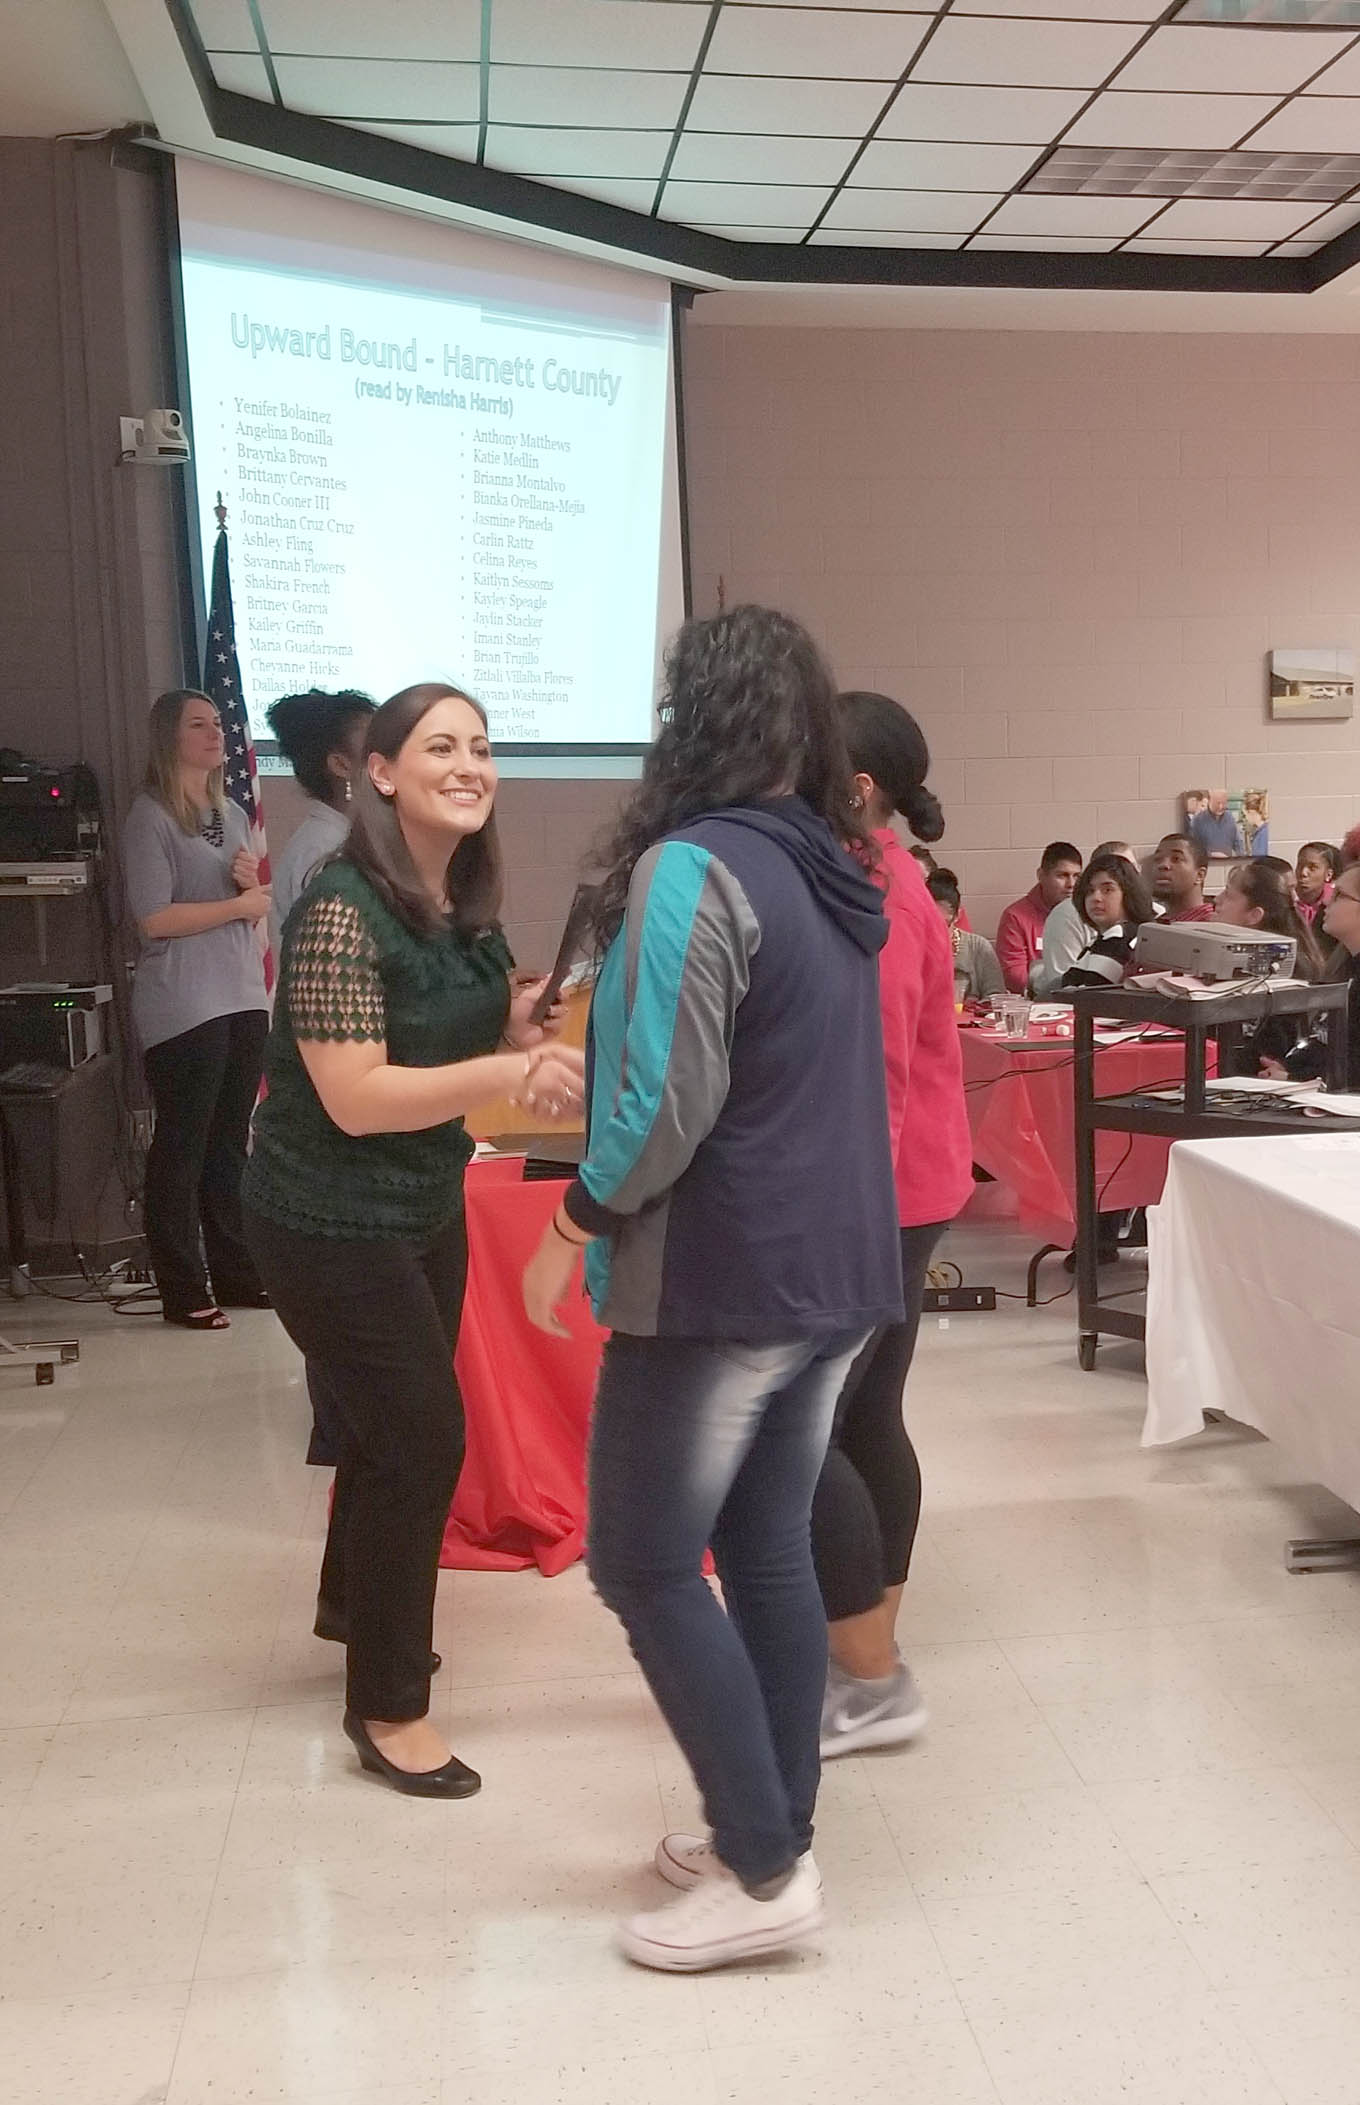 Upward Bound programs welcome new students